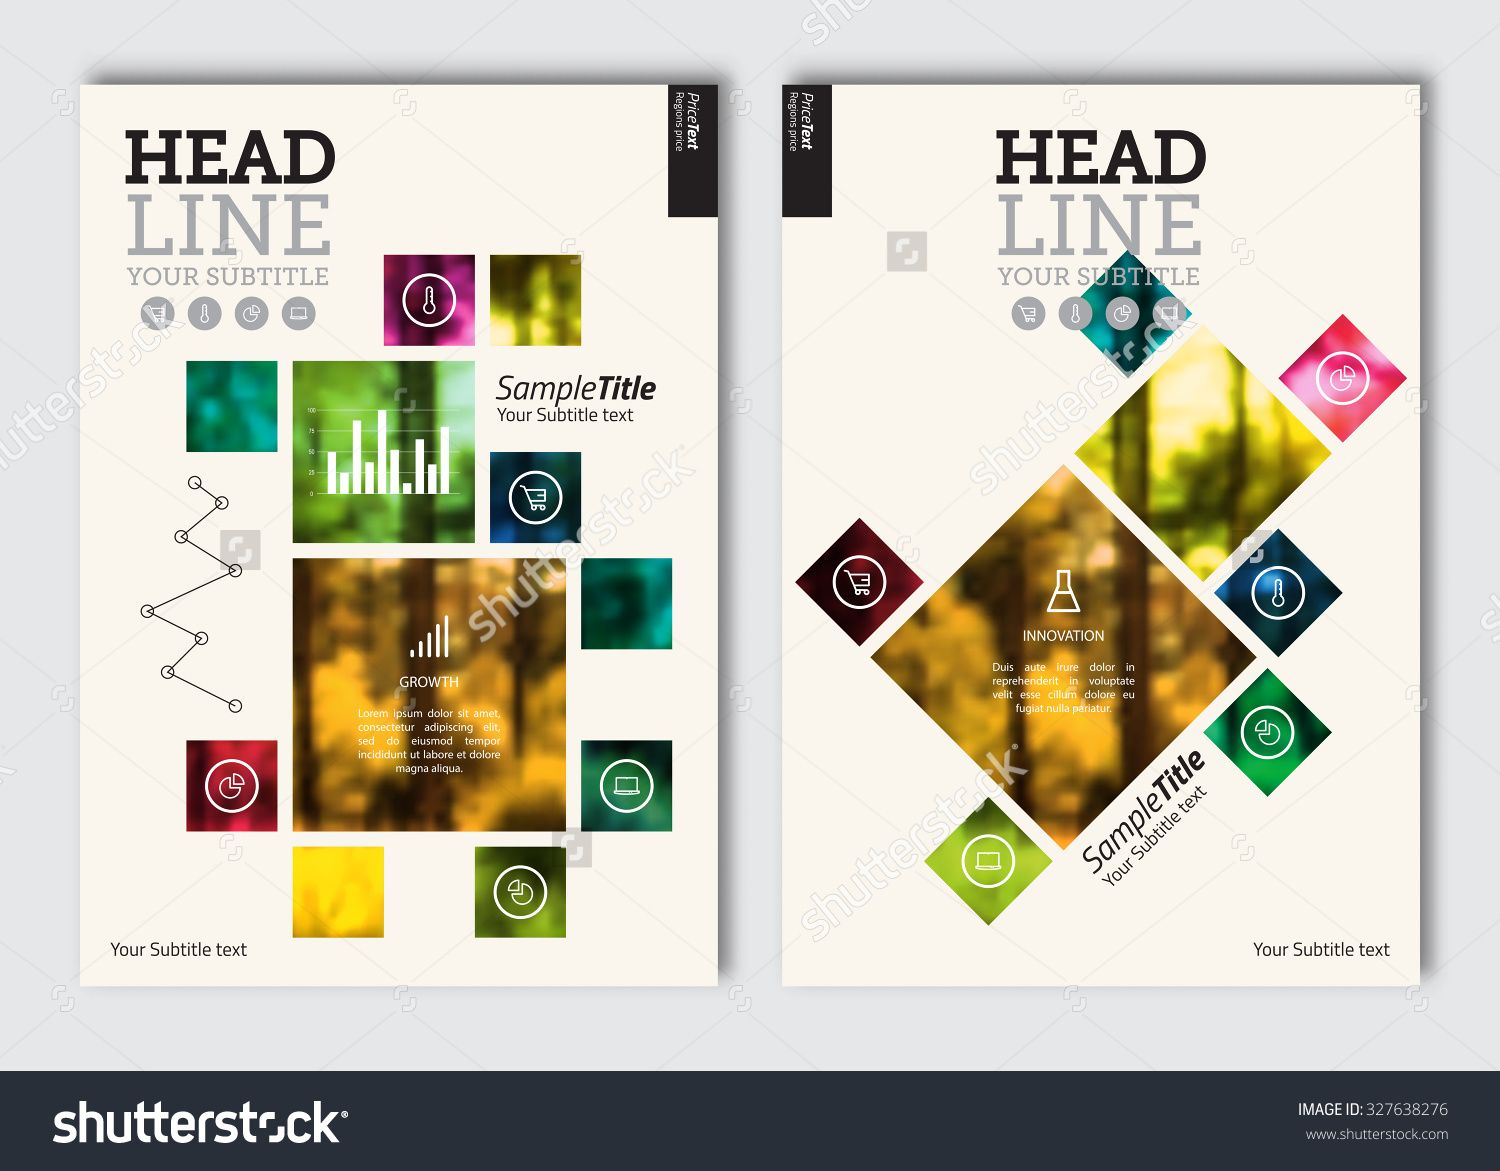 business brochure design template vector flyer layout blur business brochure design template vector flyer layout blur background elements for magazine